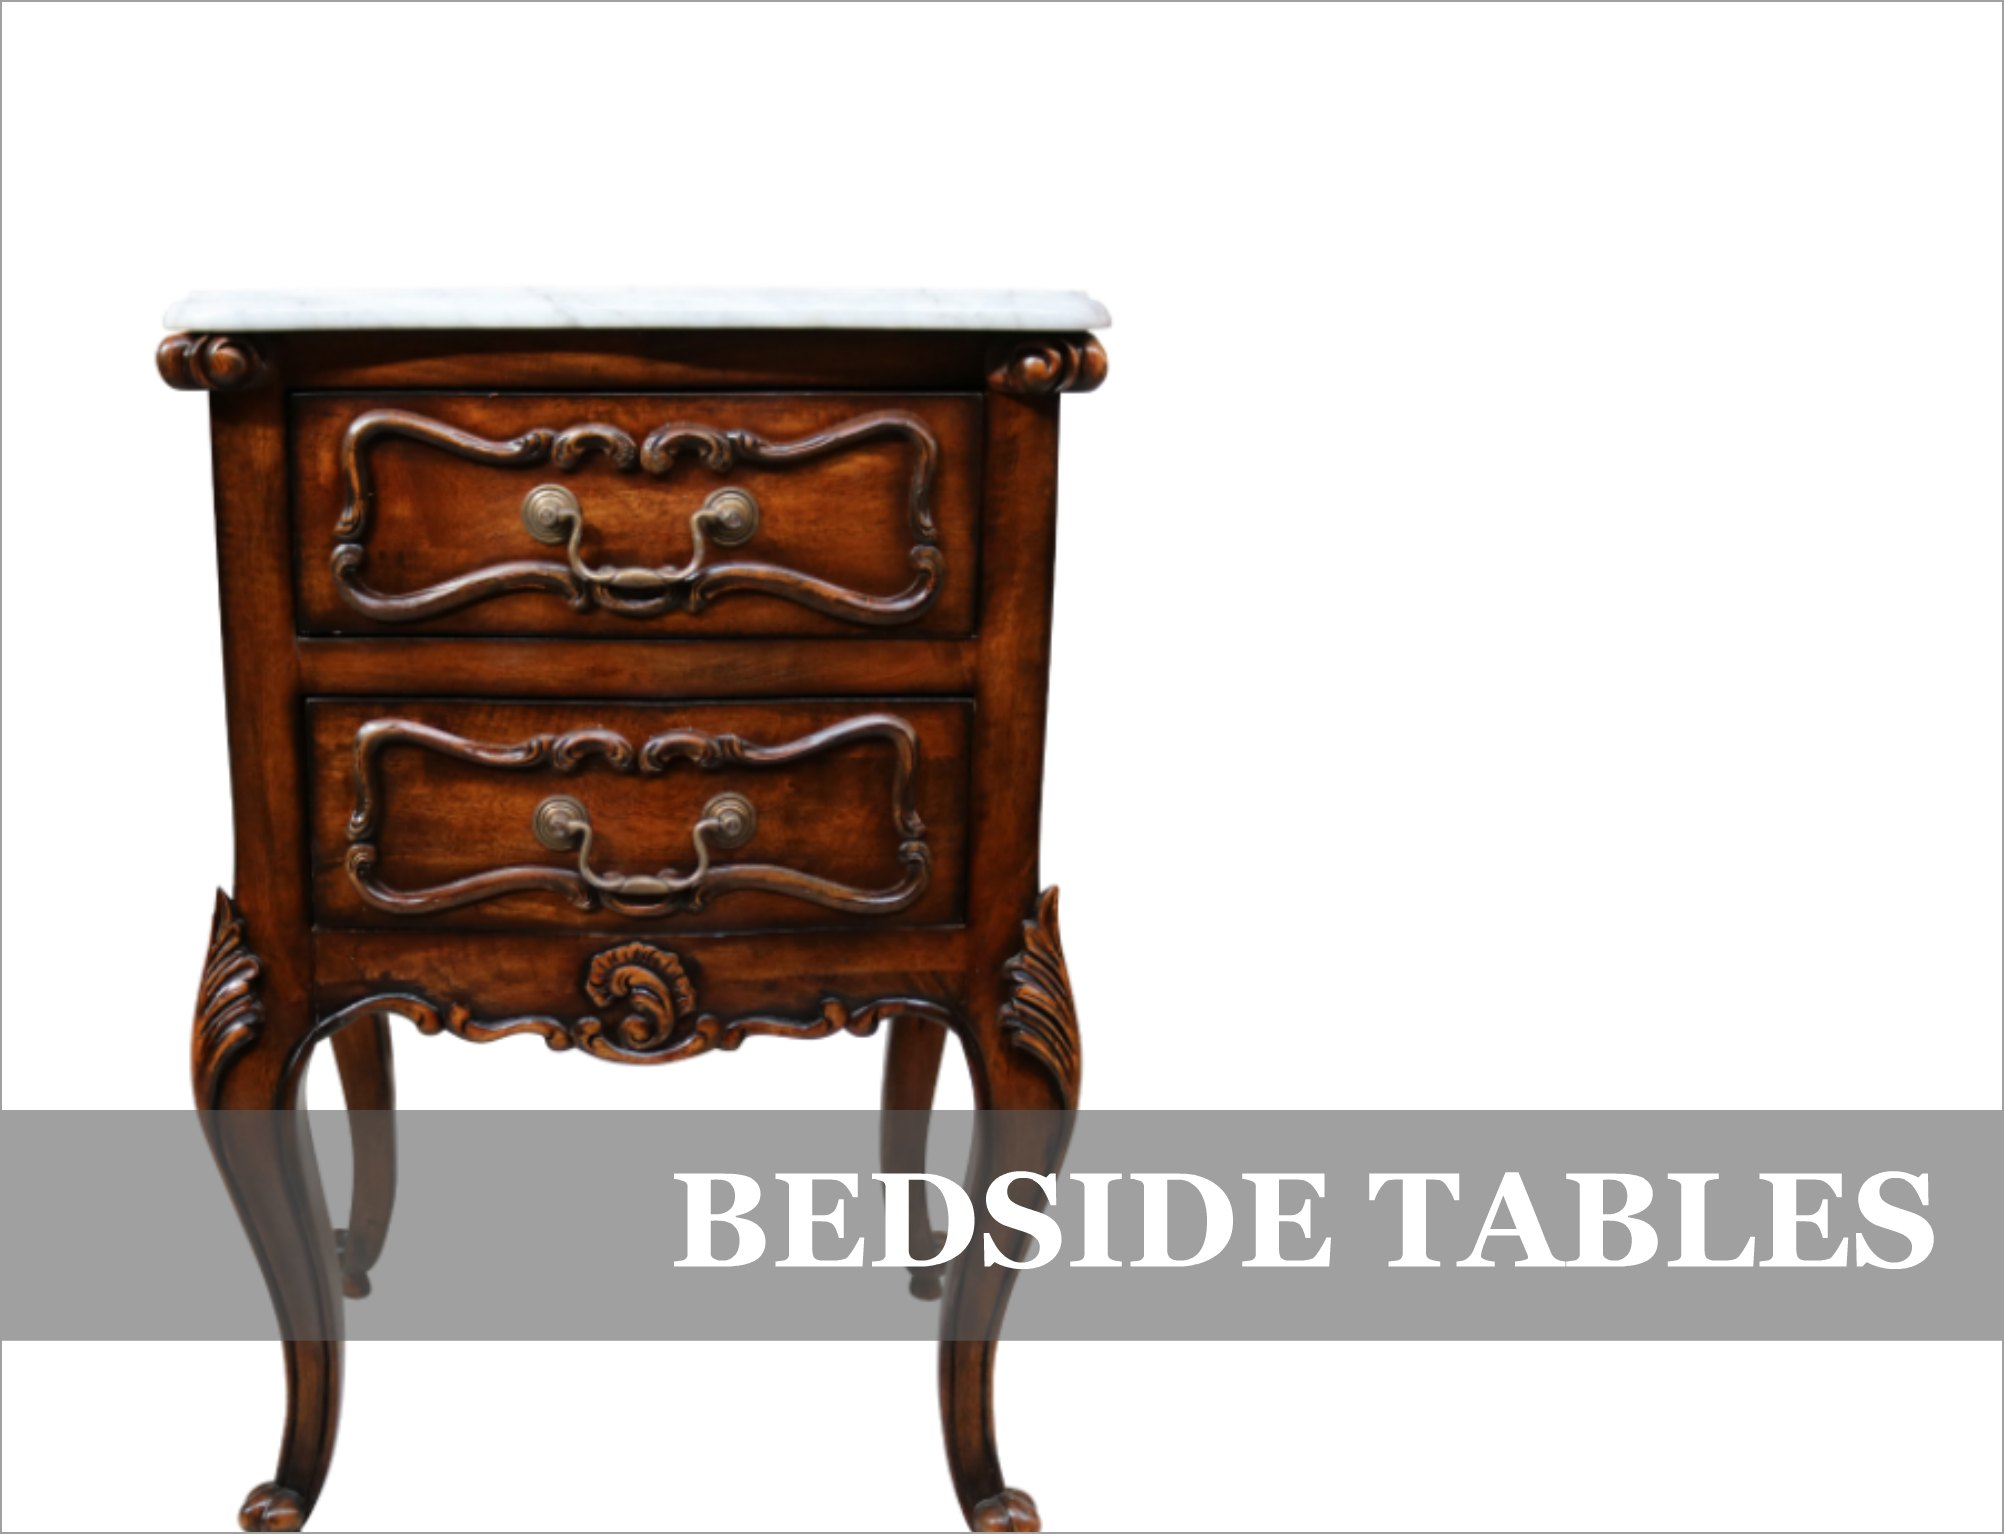 French Provincial Bedside Tables Night Stands